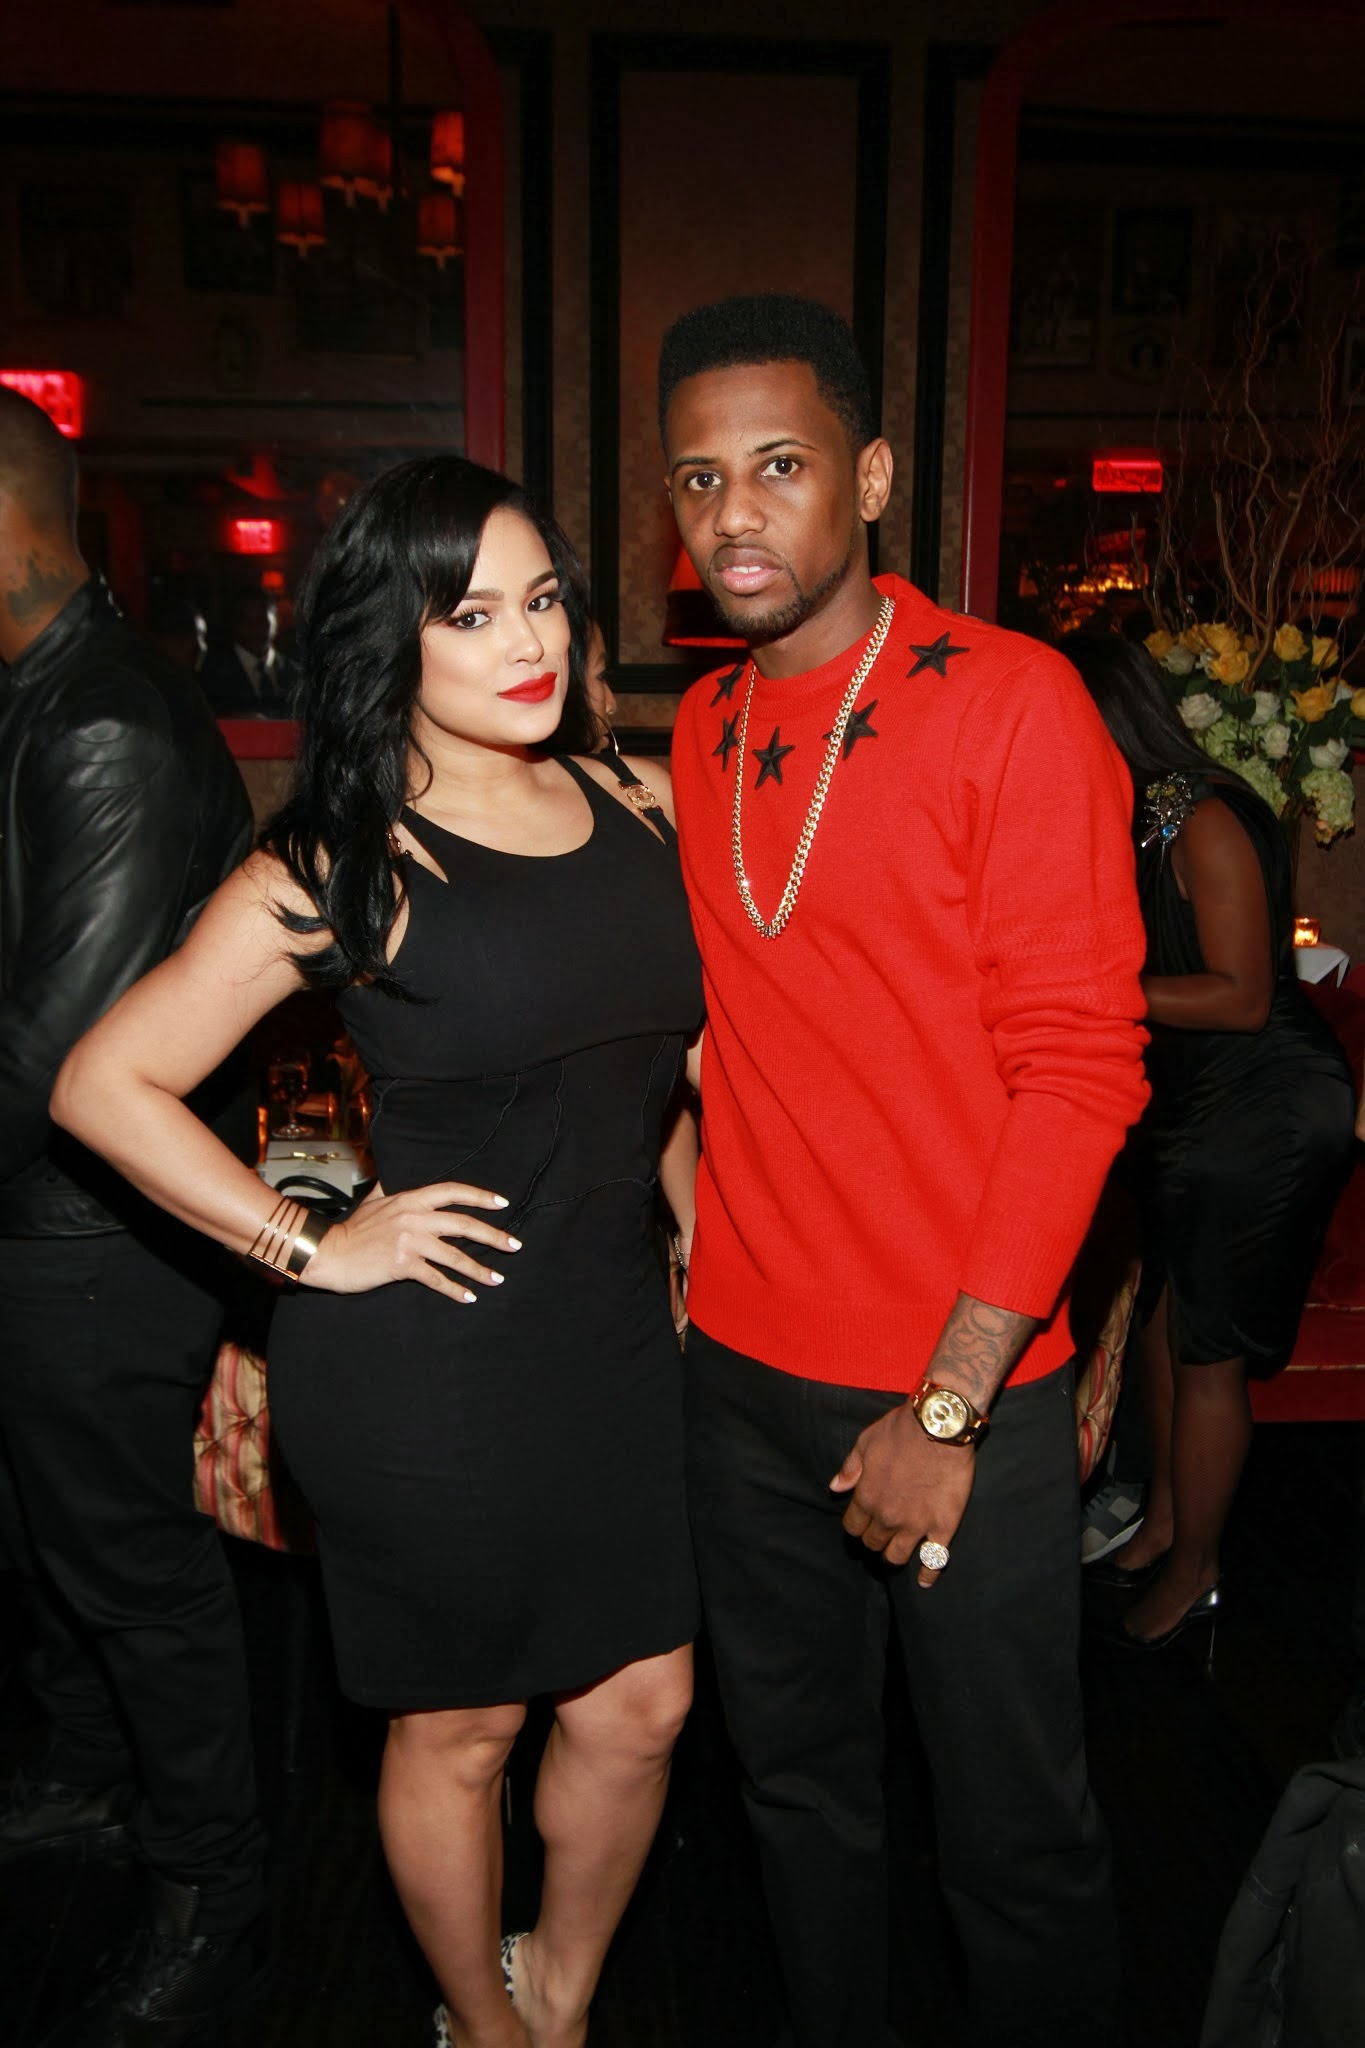 Fabolous Posts Cryptic Message After Domestic Violence Arrest